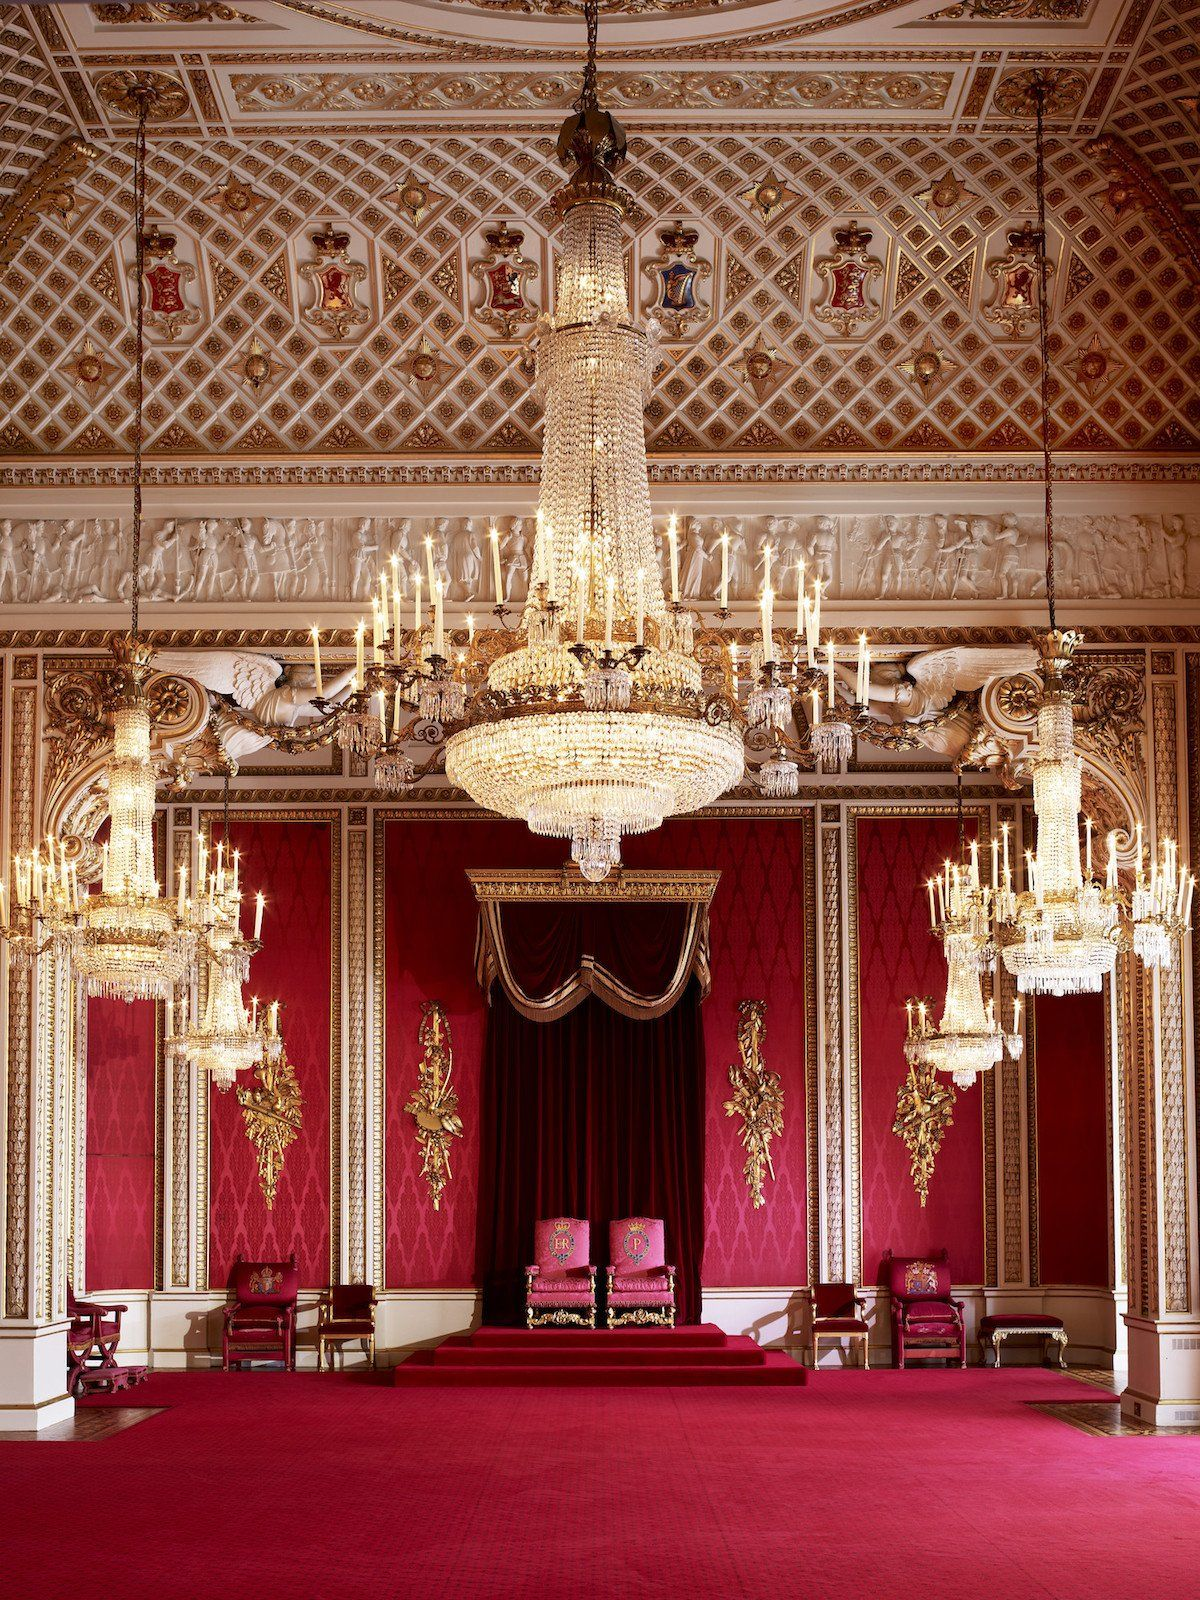 Take A Rare Glimpse Inside Buckingham Palace S State Rooms Where The Queen S Thrones Are On Display Buckingham Palace Throne Room Palace Interior